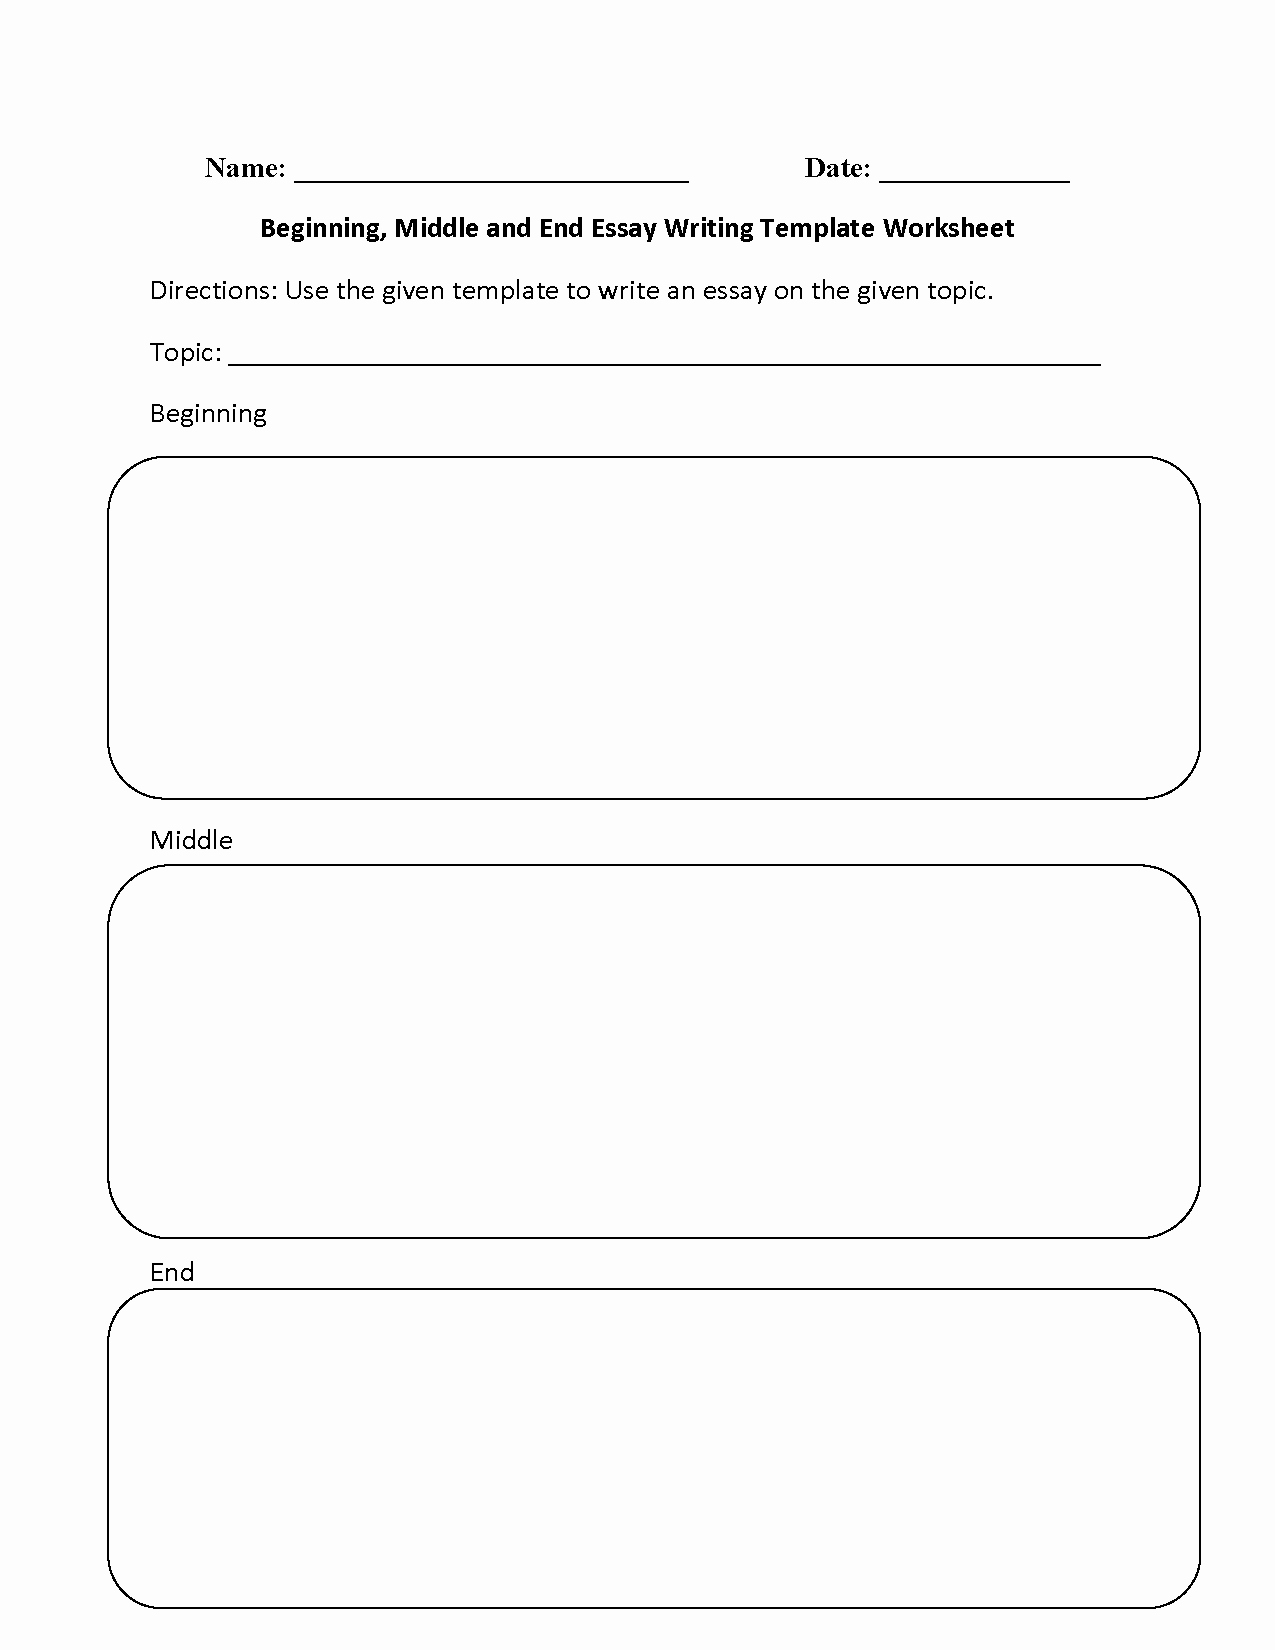 Beginning Middle End Worksheet Lovely Writing Worksheets